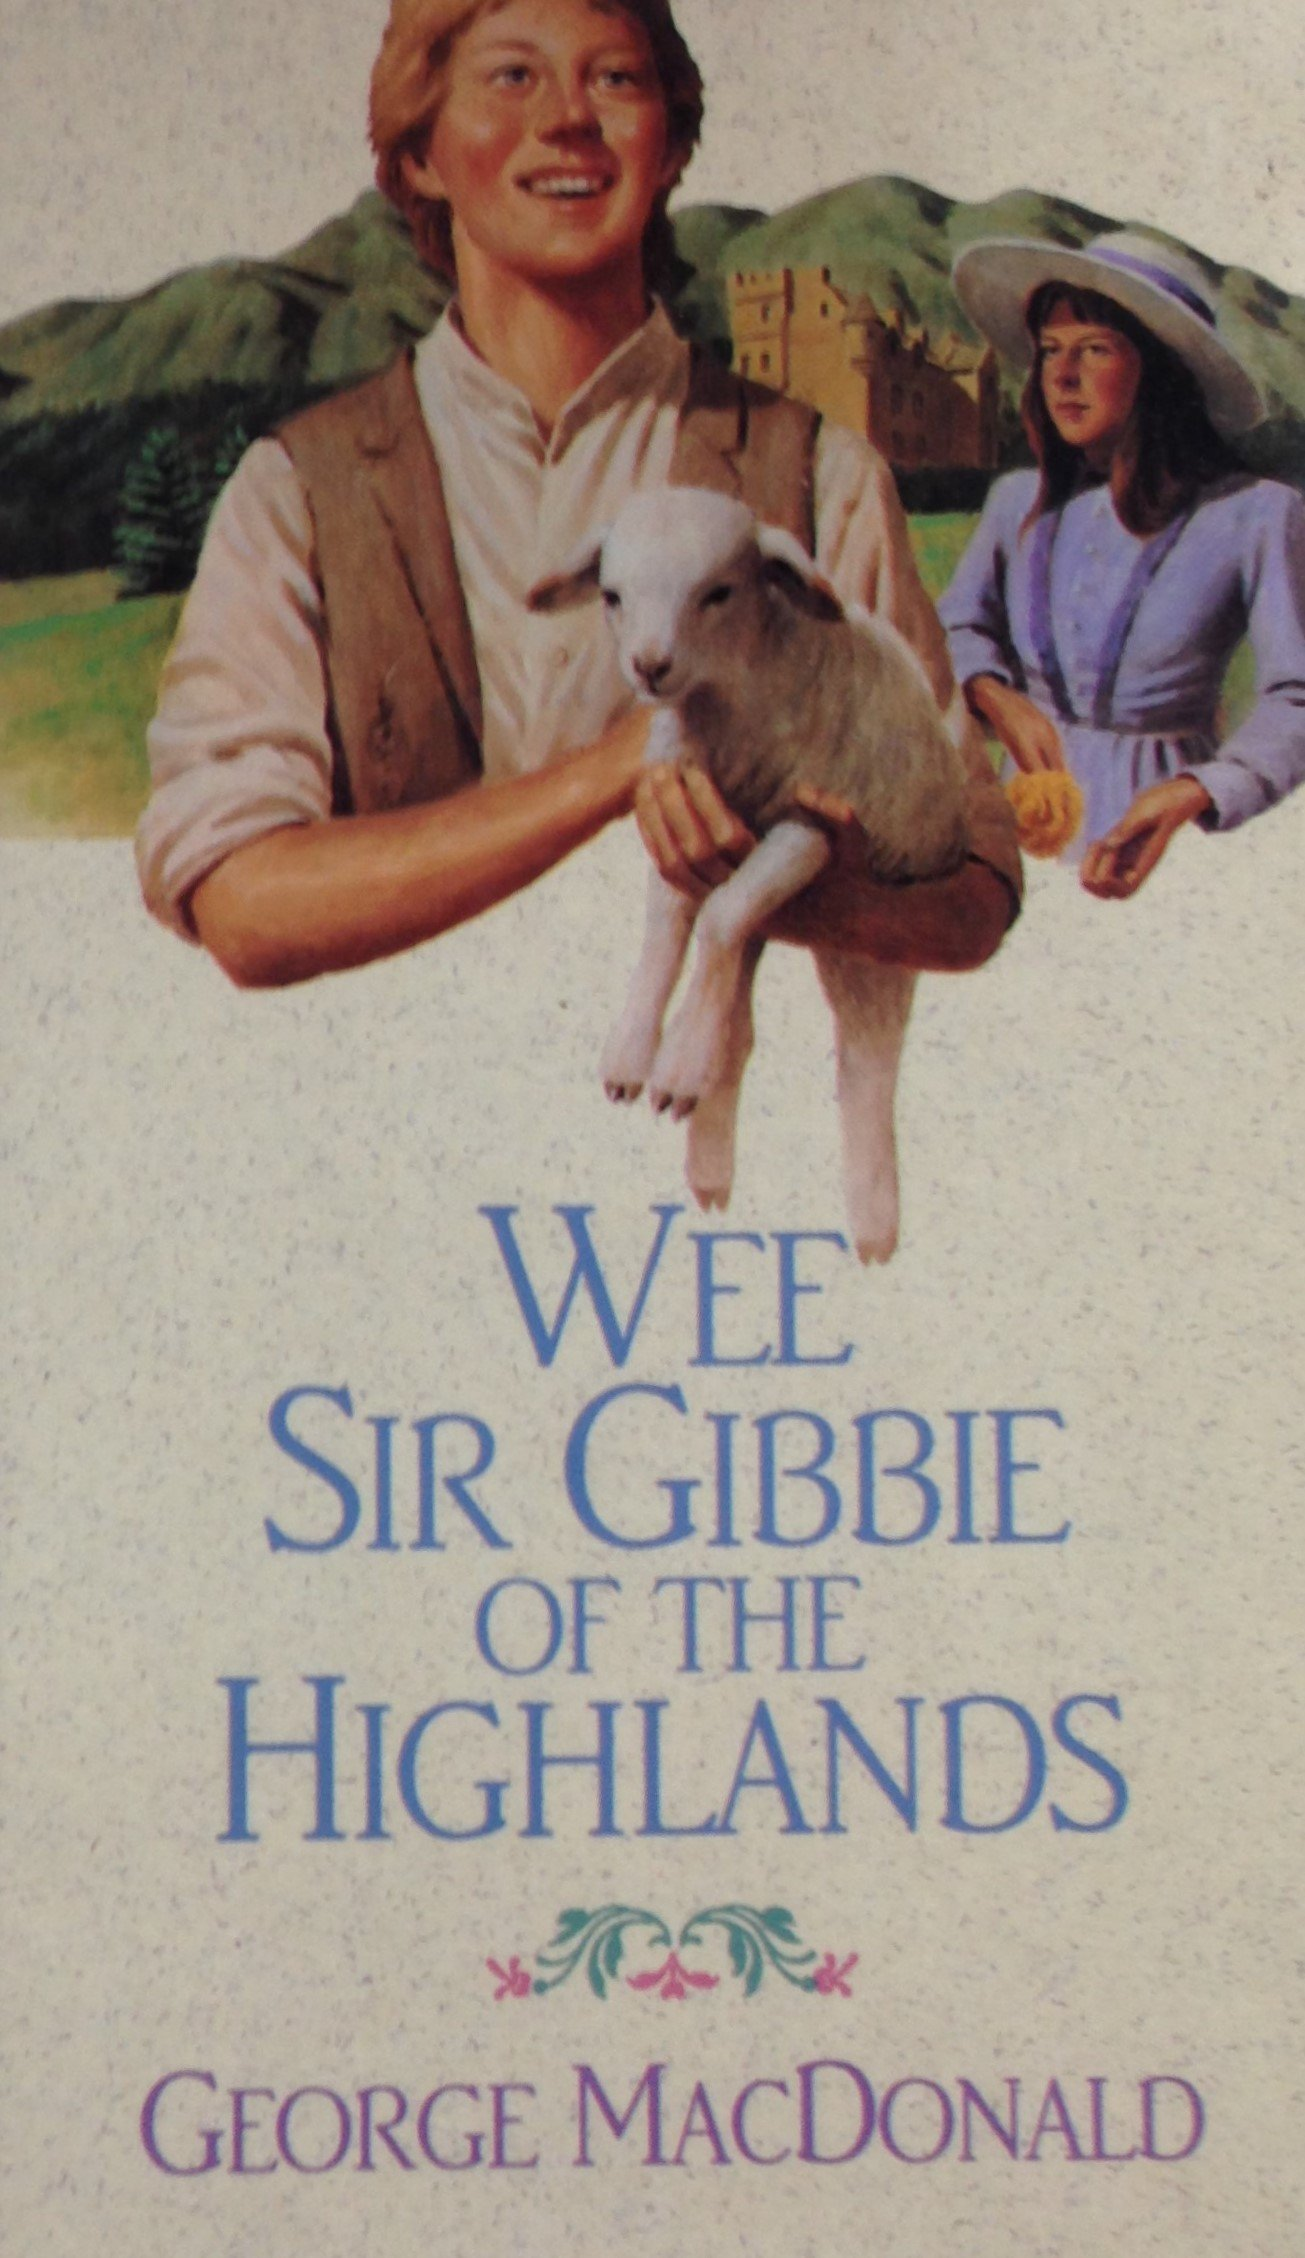 Wee Sir Gibbie of the Highlands by George MacDonald 00115